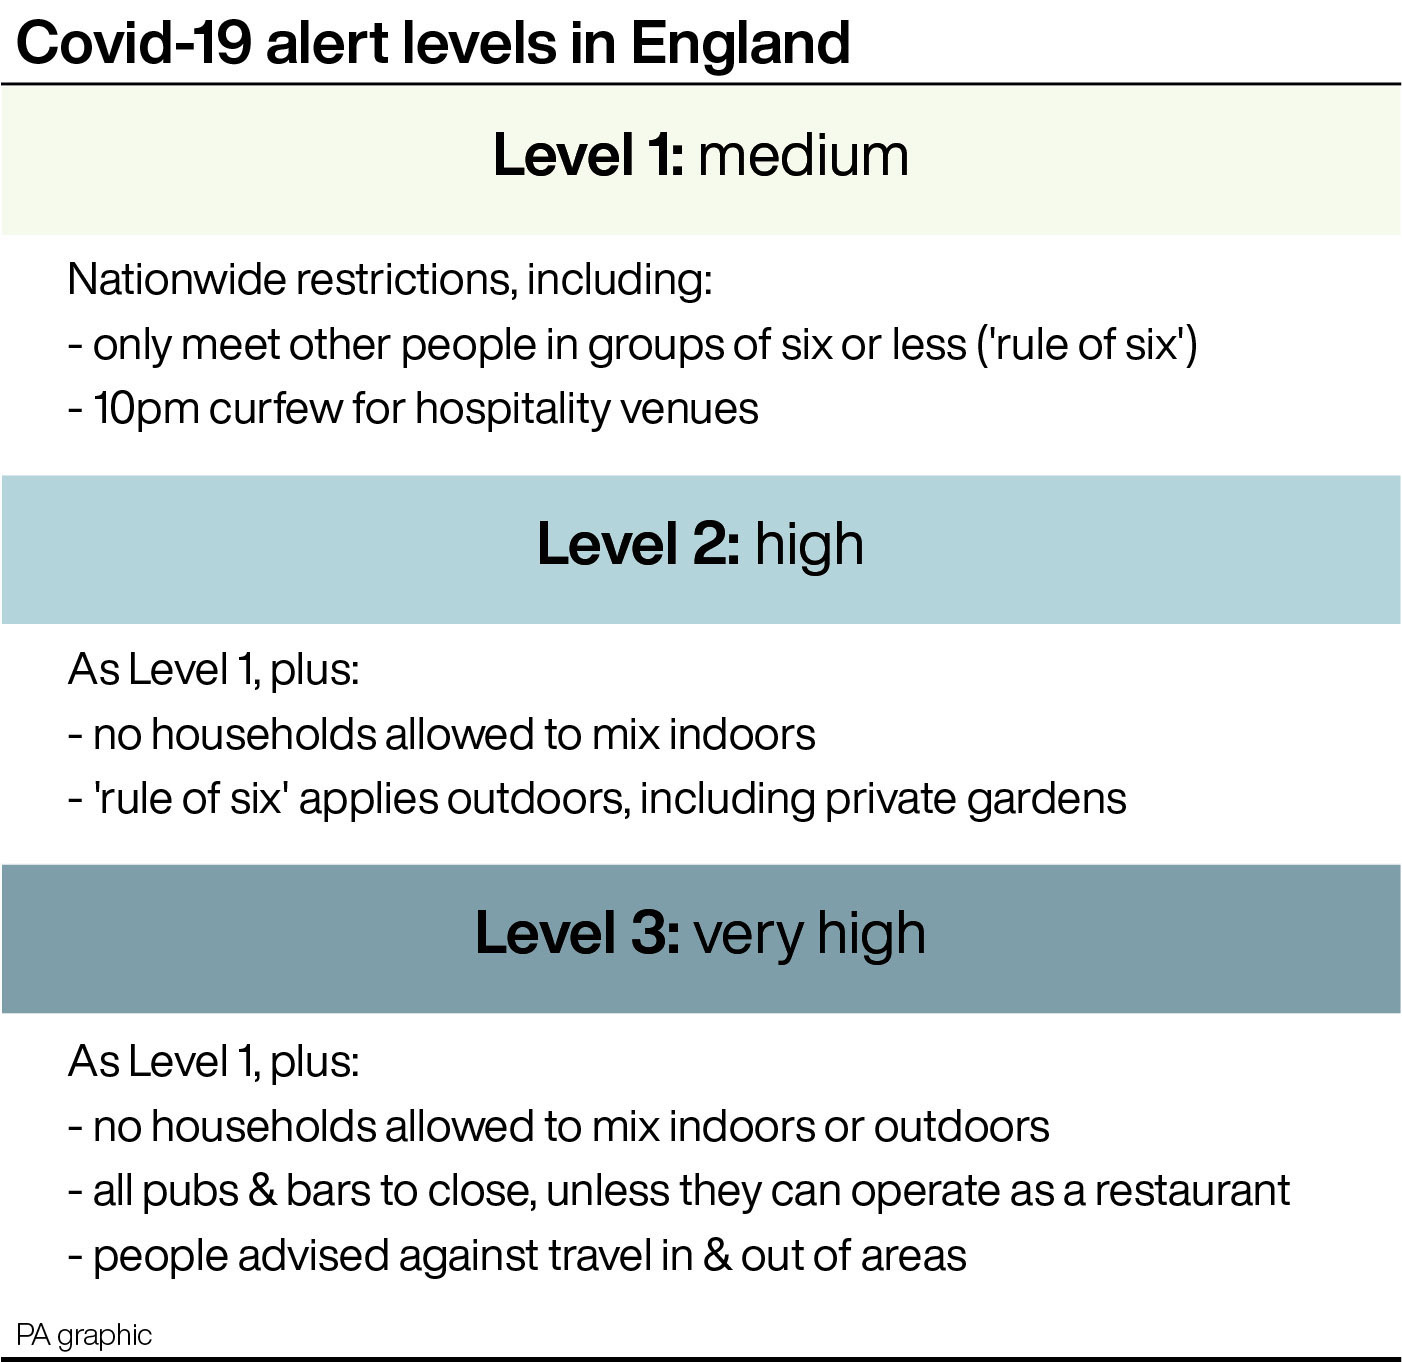 Scientists debunk Covid-19 herd immunity as a 'dangerous fallacy'